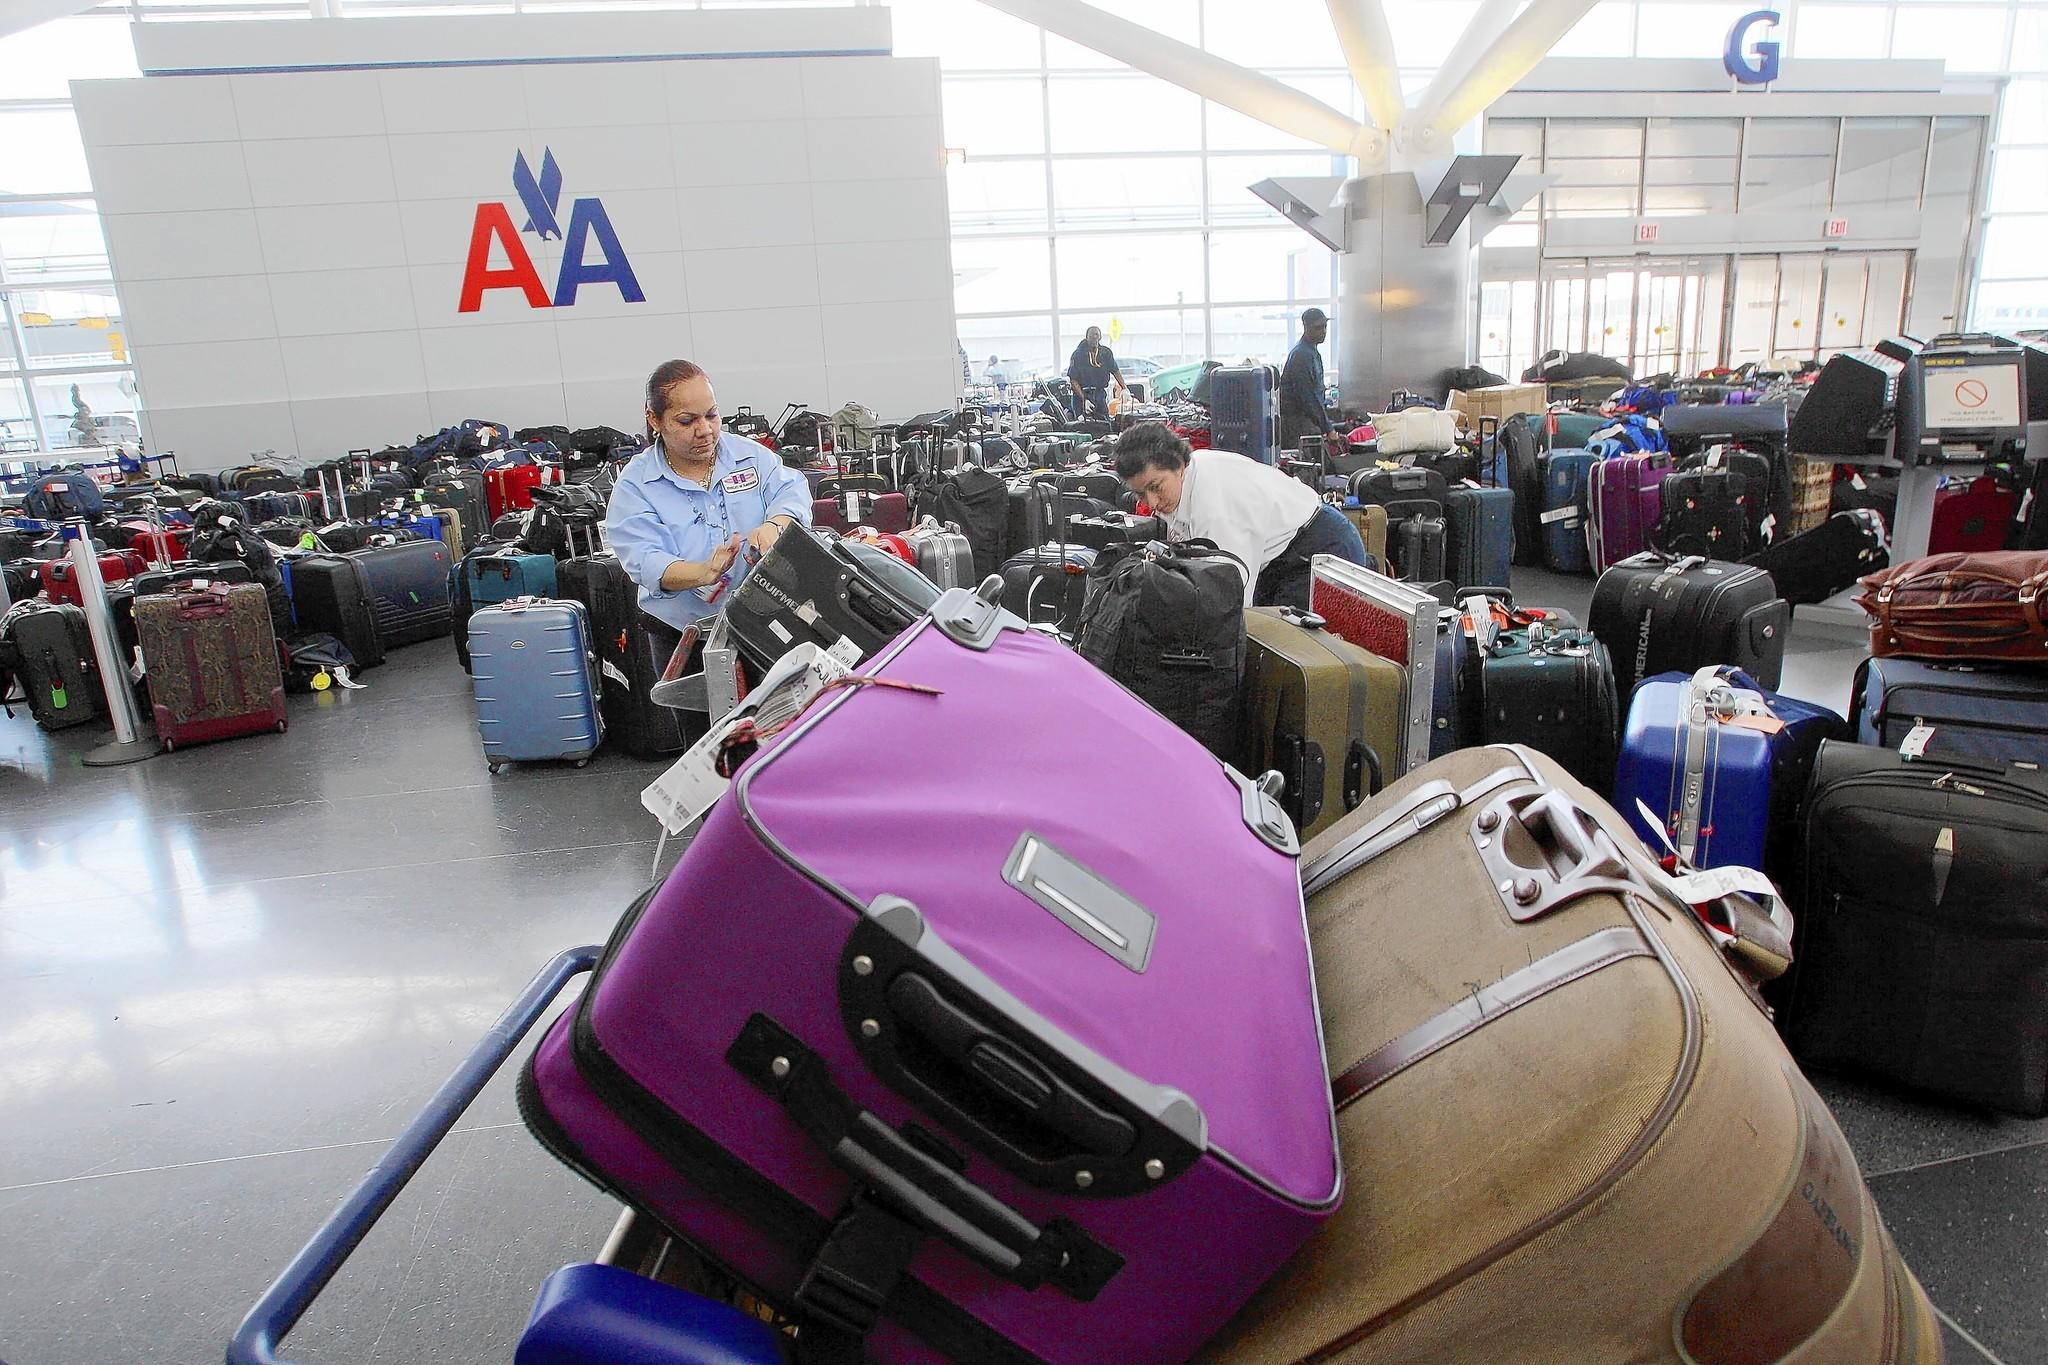 Of all mishandled bags, 81% were simply delayed, 16% were damaged or pilfered and 3% were declared lost or stolen and never found, a new study found. Above, luggage is sorted at John F. Kennedy International Airport in New York.